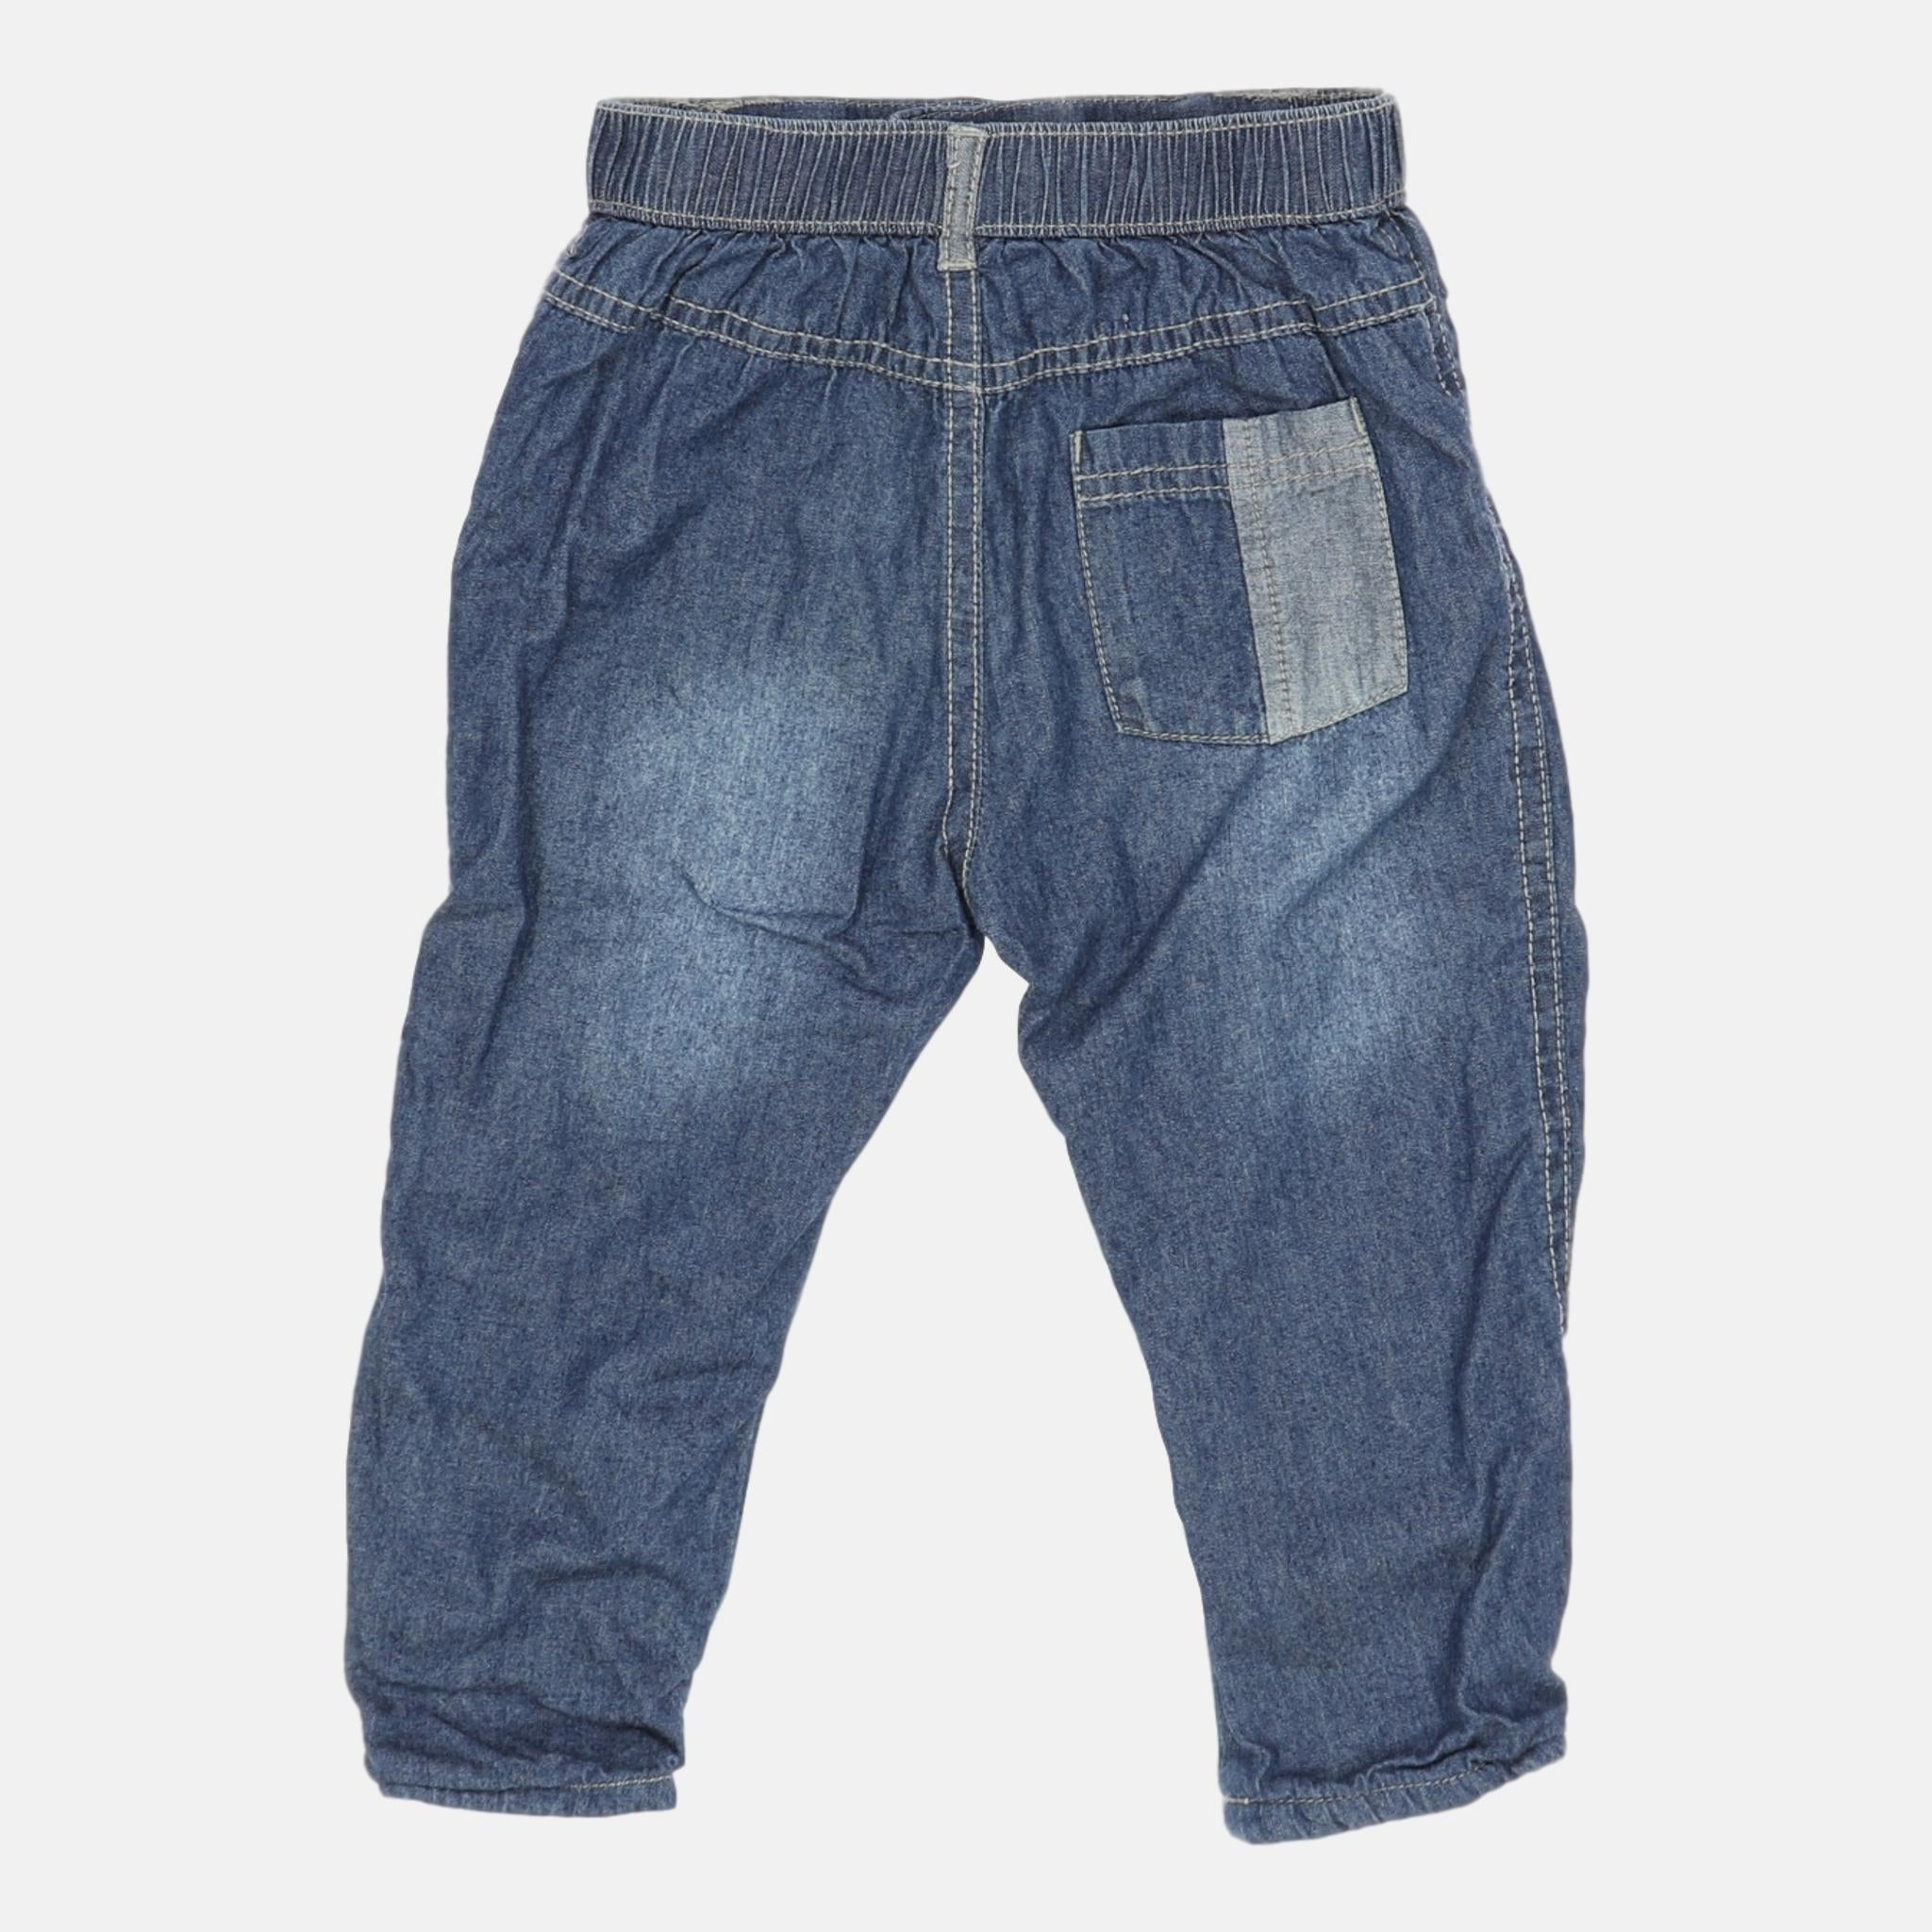 Jeans, 12-18 Months